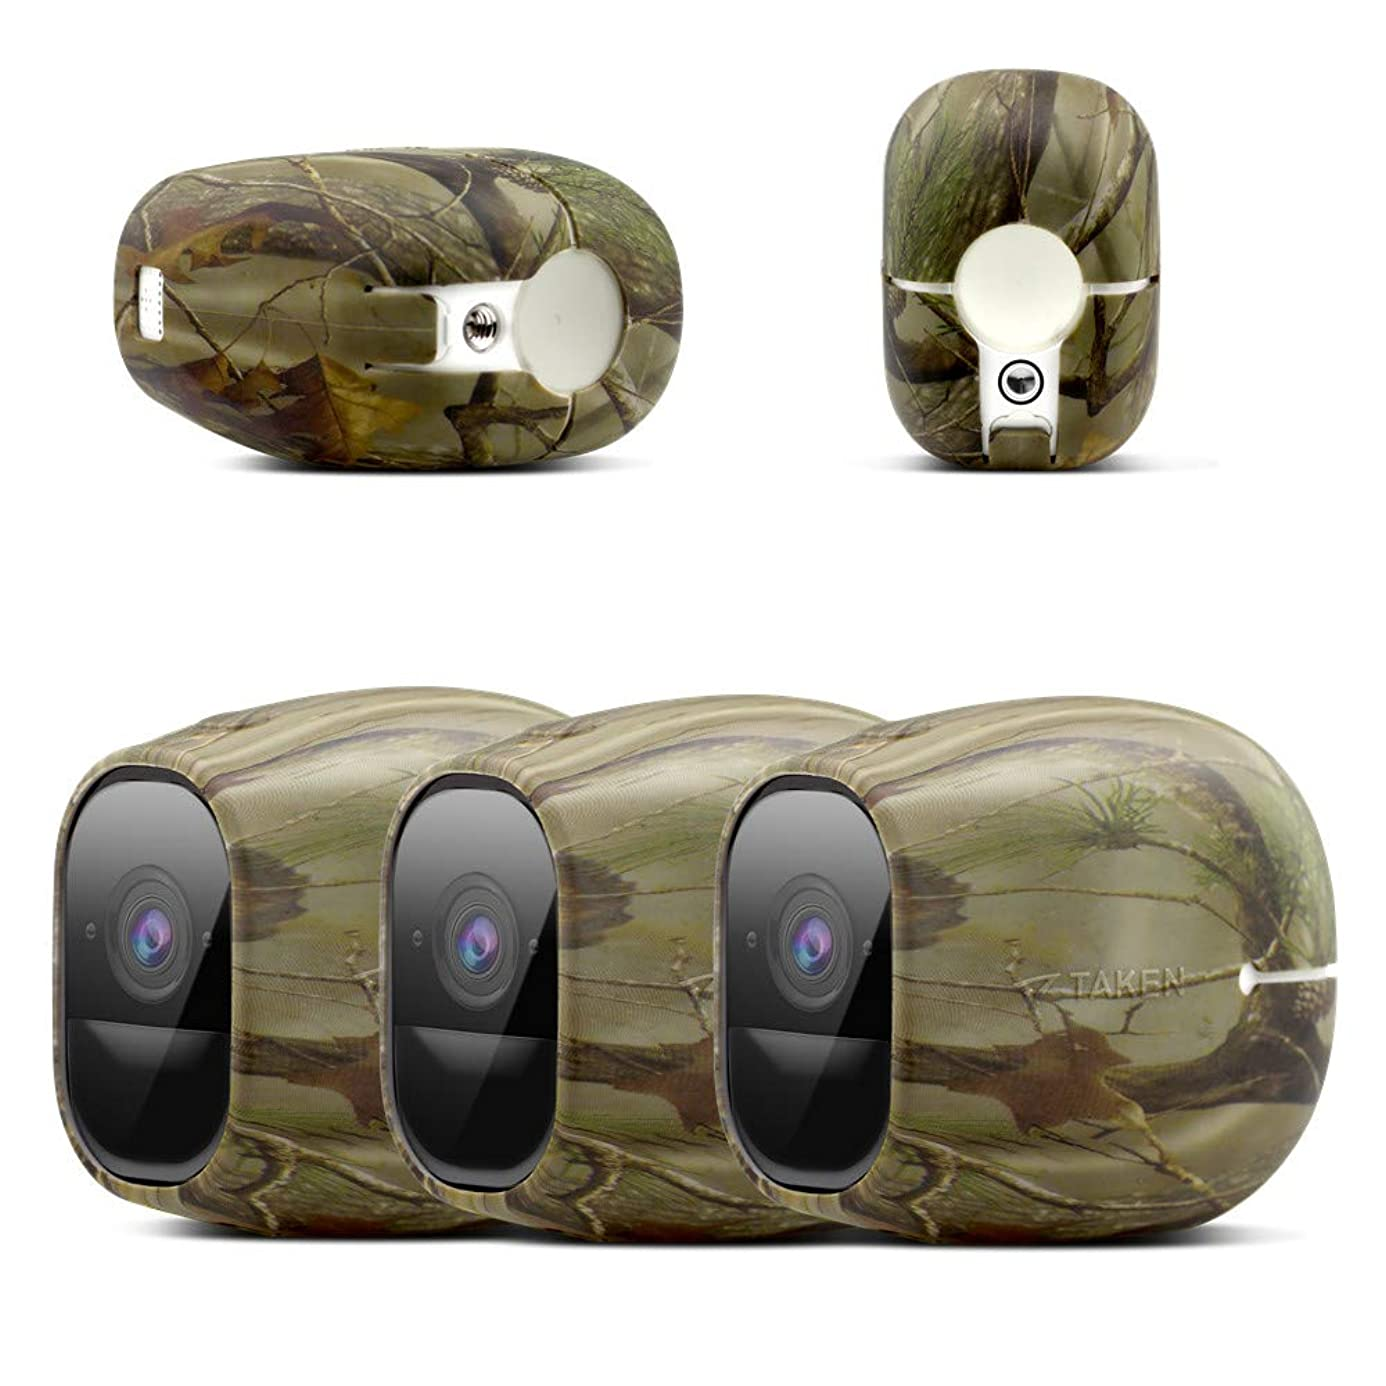 Silicone Skins Compatible with Arlo pro,Arlo pro 2 Smart Security Home Camera, Taken Silicone Skins Case Cover for Arlo pro & Arlo pro 2 Smart Security Wire-Free Cameras, 3 Pack, Camouflage